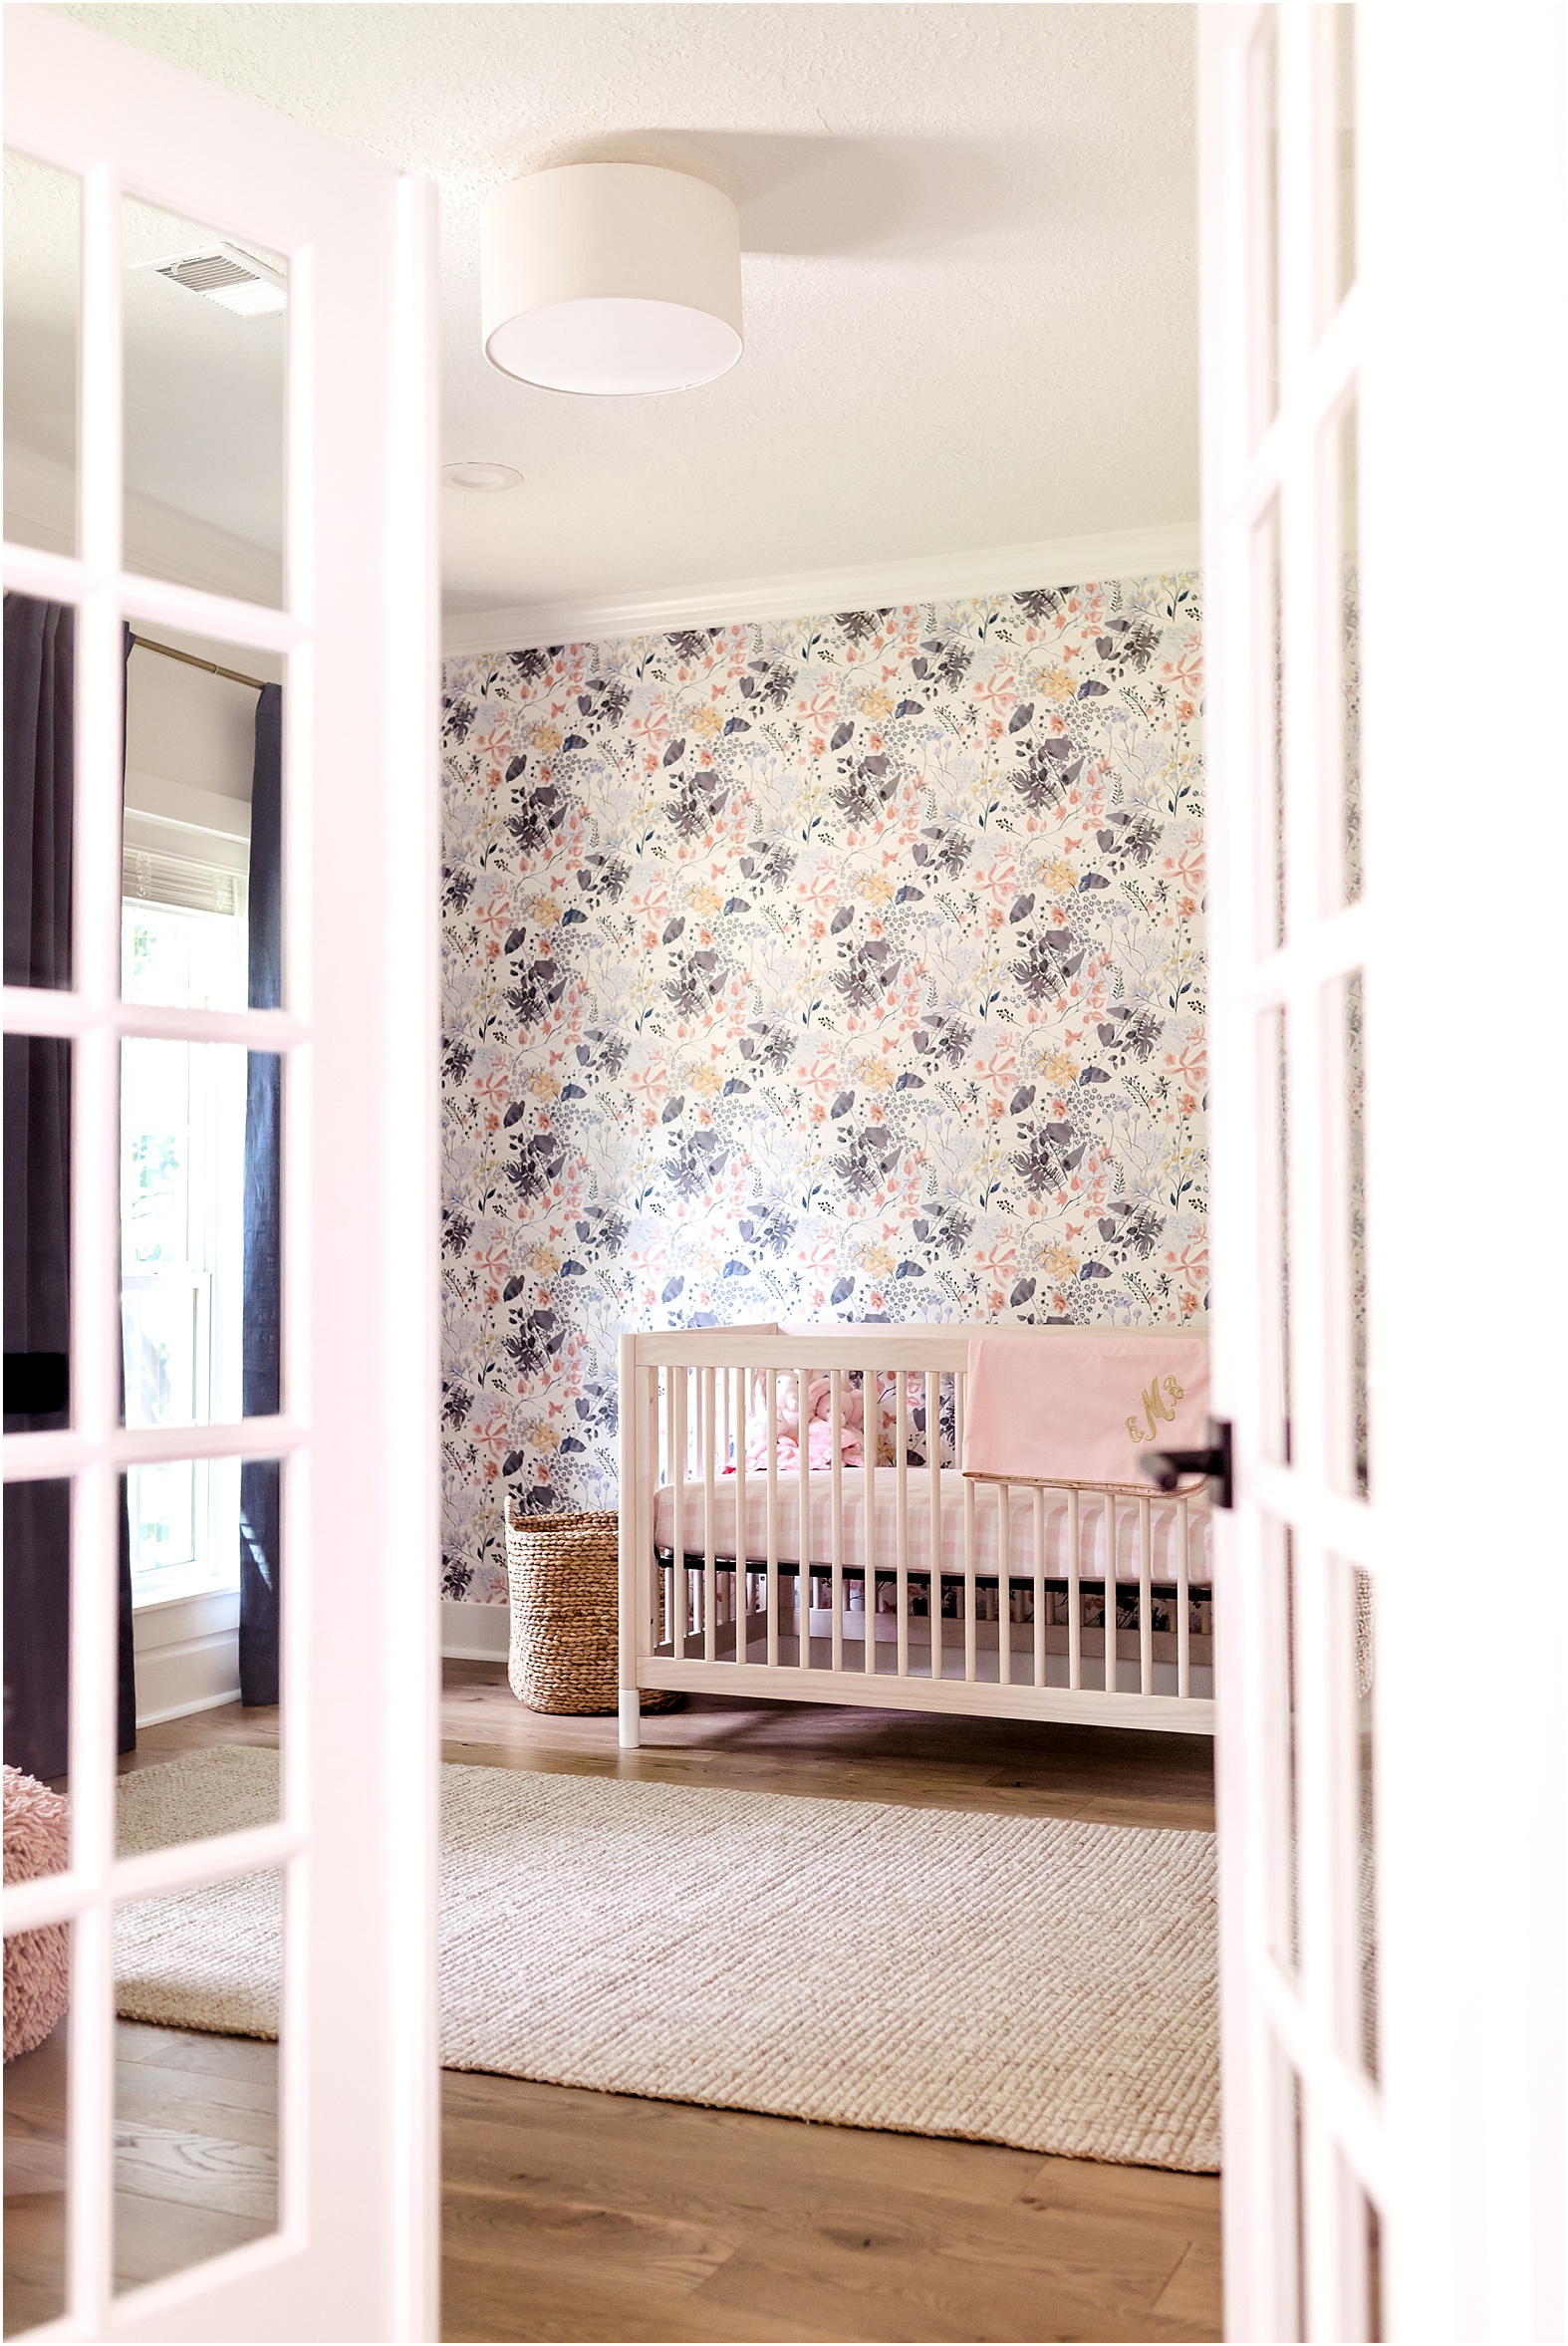 Houston, TX Newborn Photographer Dear Marlowe Photography | Modern, clean, baby girl session with pink, gold, and navy decor, mid century touches, and a beautiful floral wallpaper accent wall. The perfect nursery inspiration for your modern nursery!